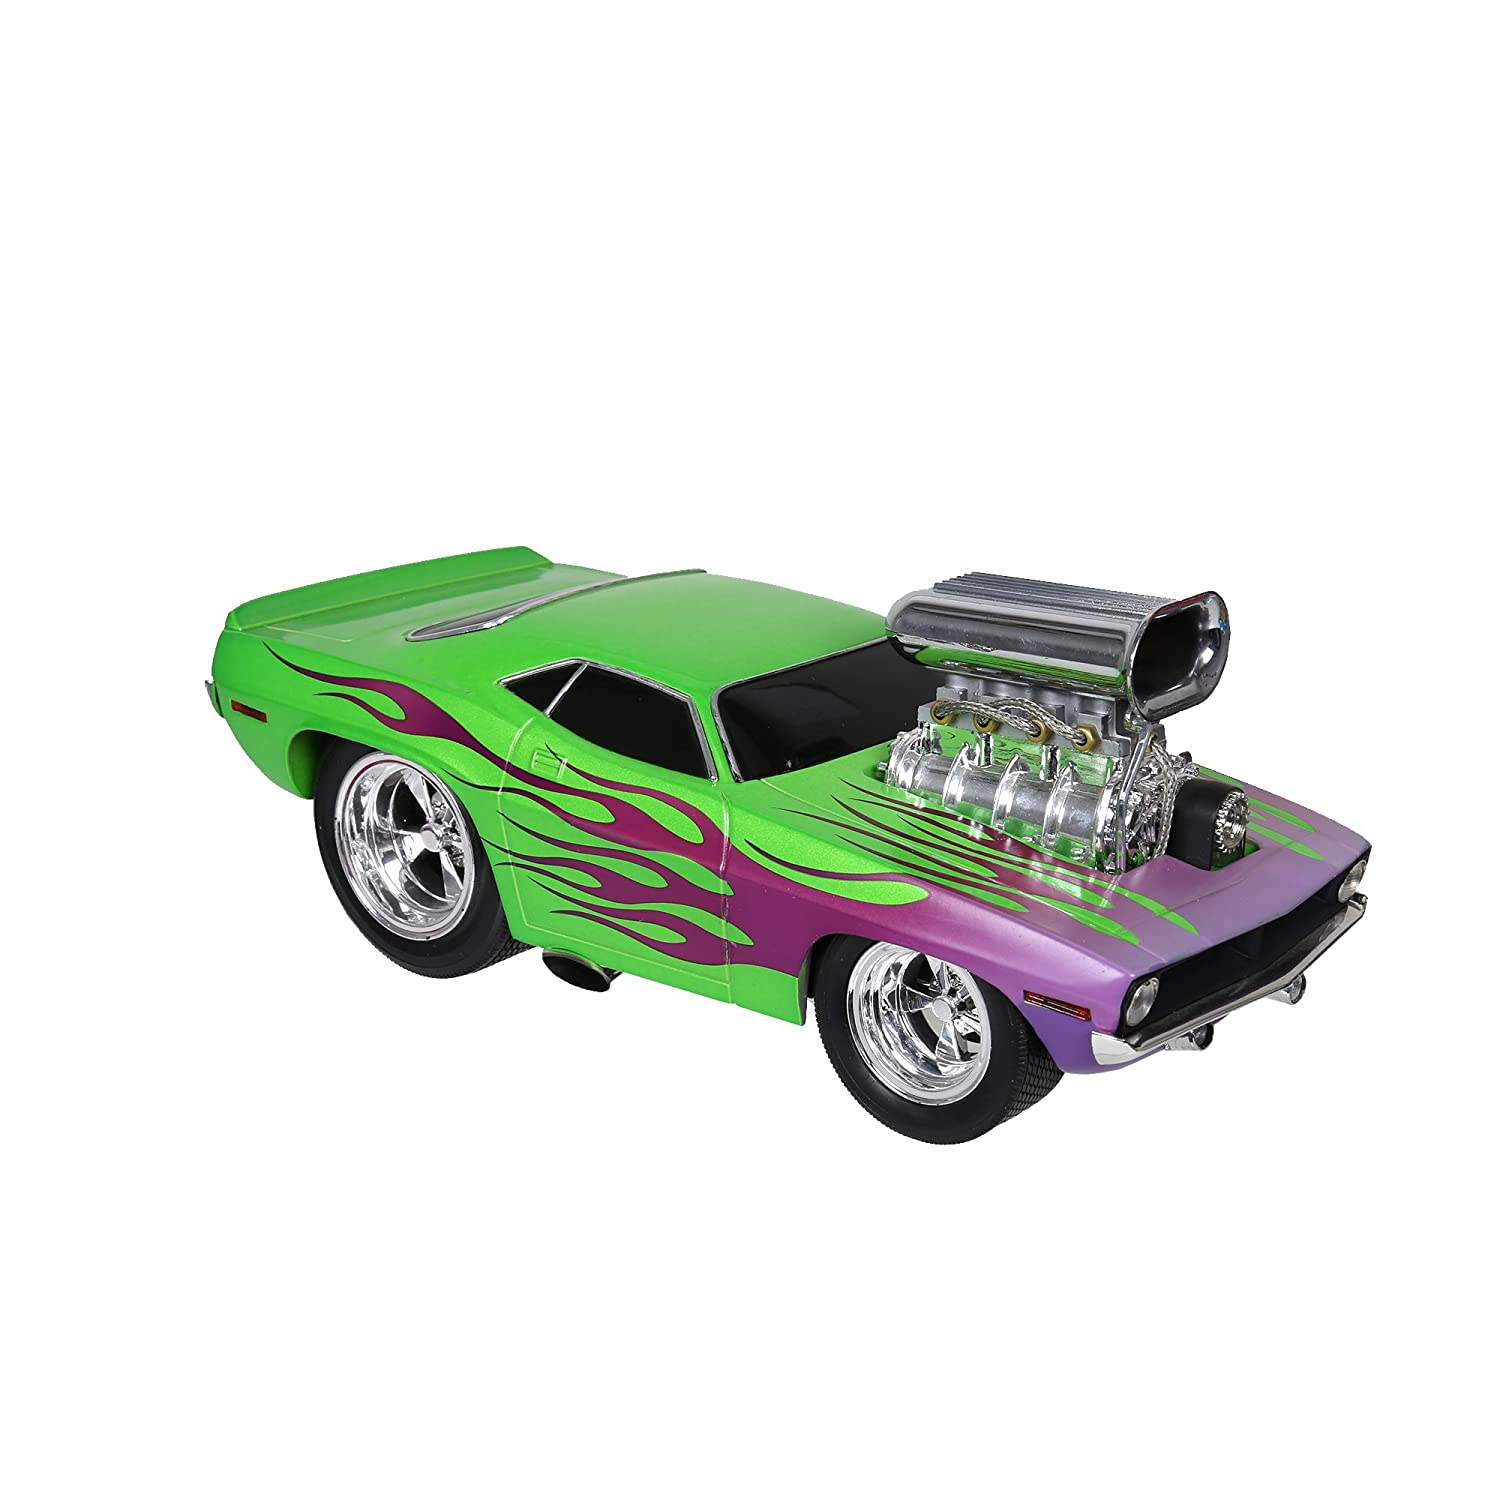 ibobby 1:18 D//C Collectible70 Cuda Pink 1:18 D//C Collectible/'70 Cuda CTG Brands Inc 12.5 Inches 01922DC-PK